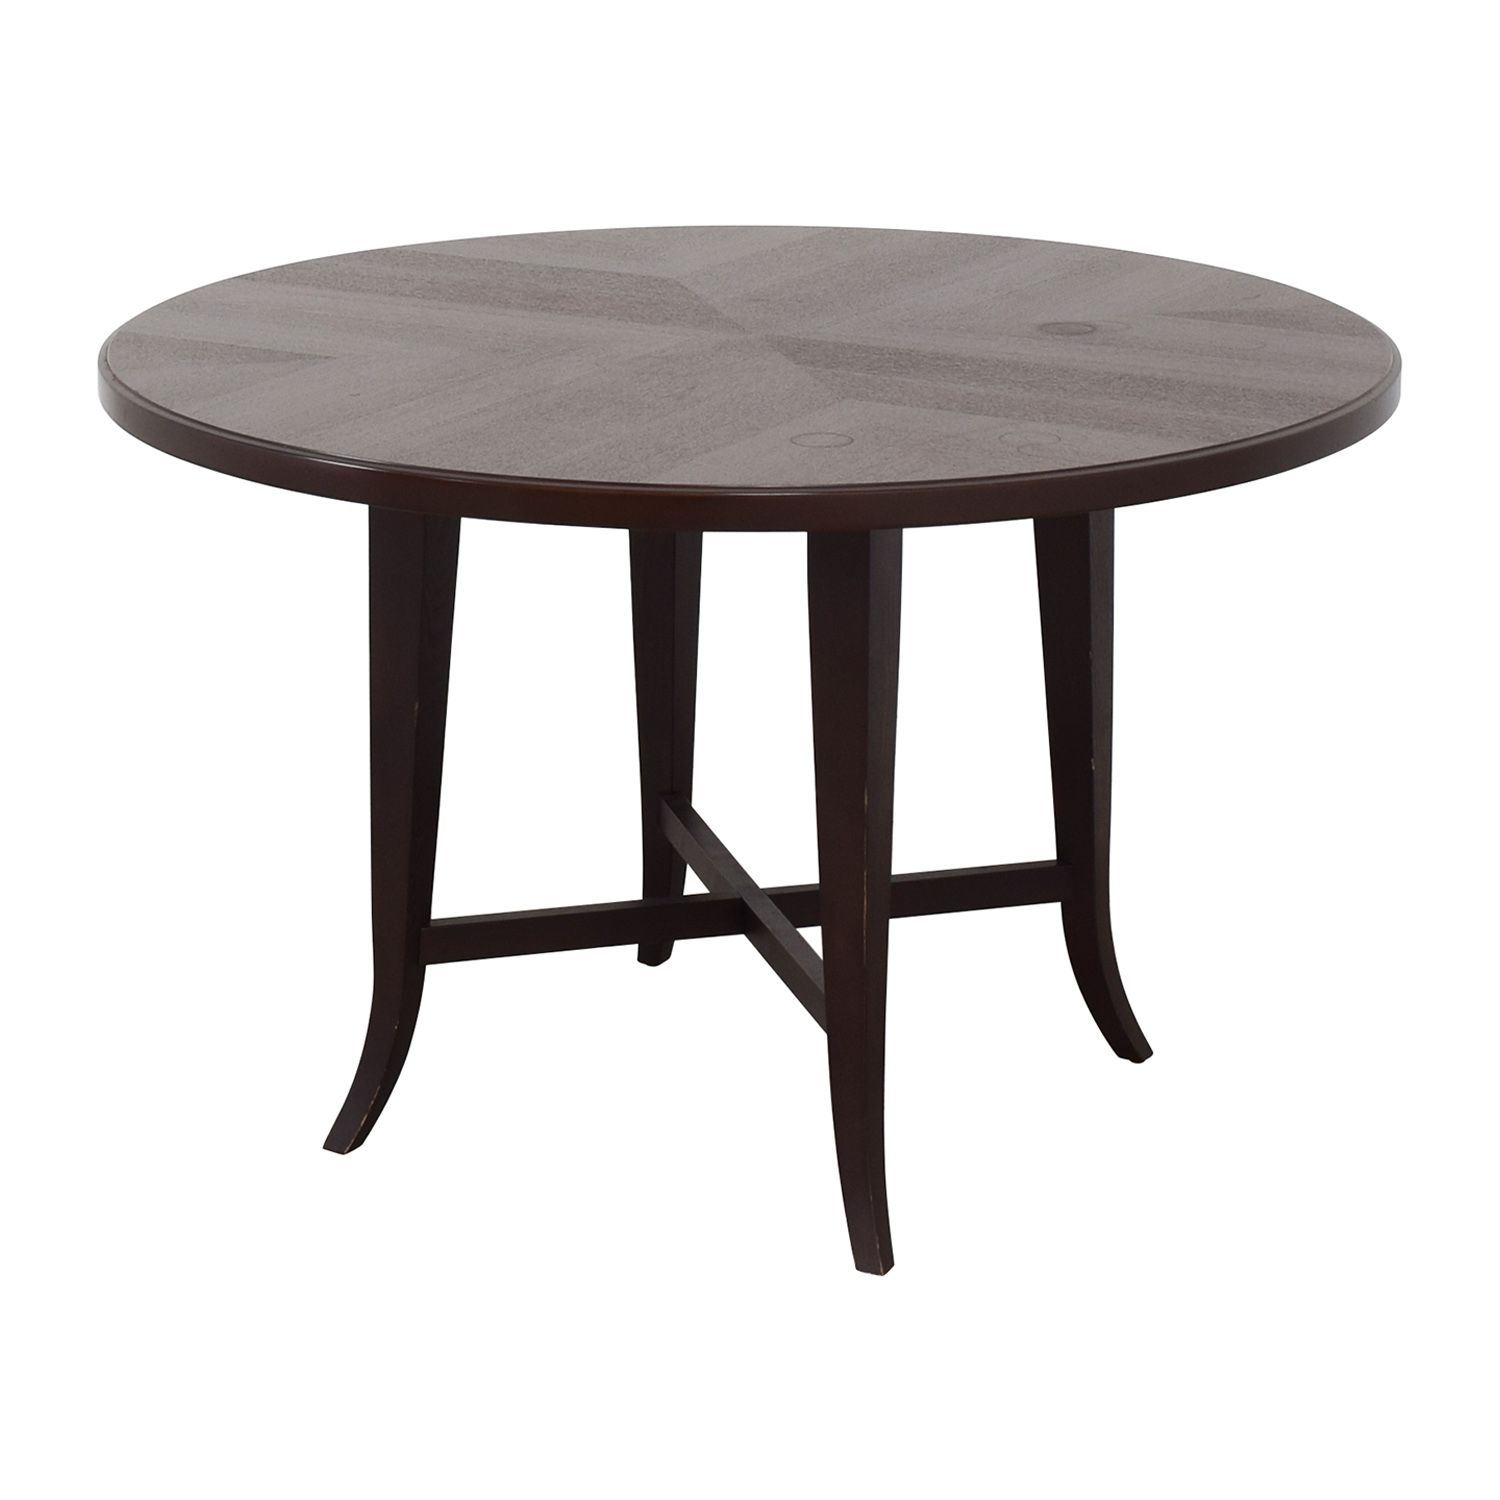 Crate & Barrel Crate & Barrel Round Dining Table for sale